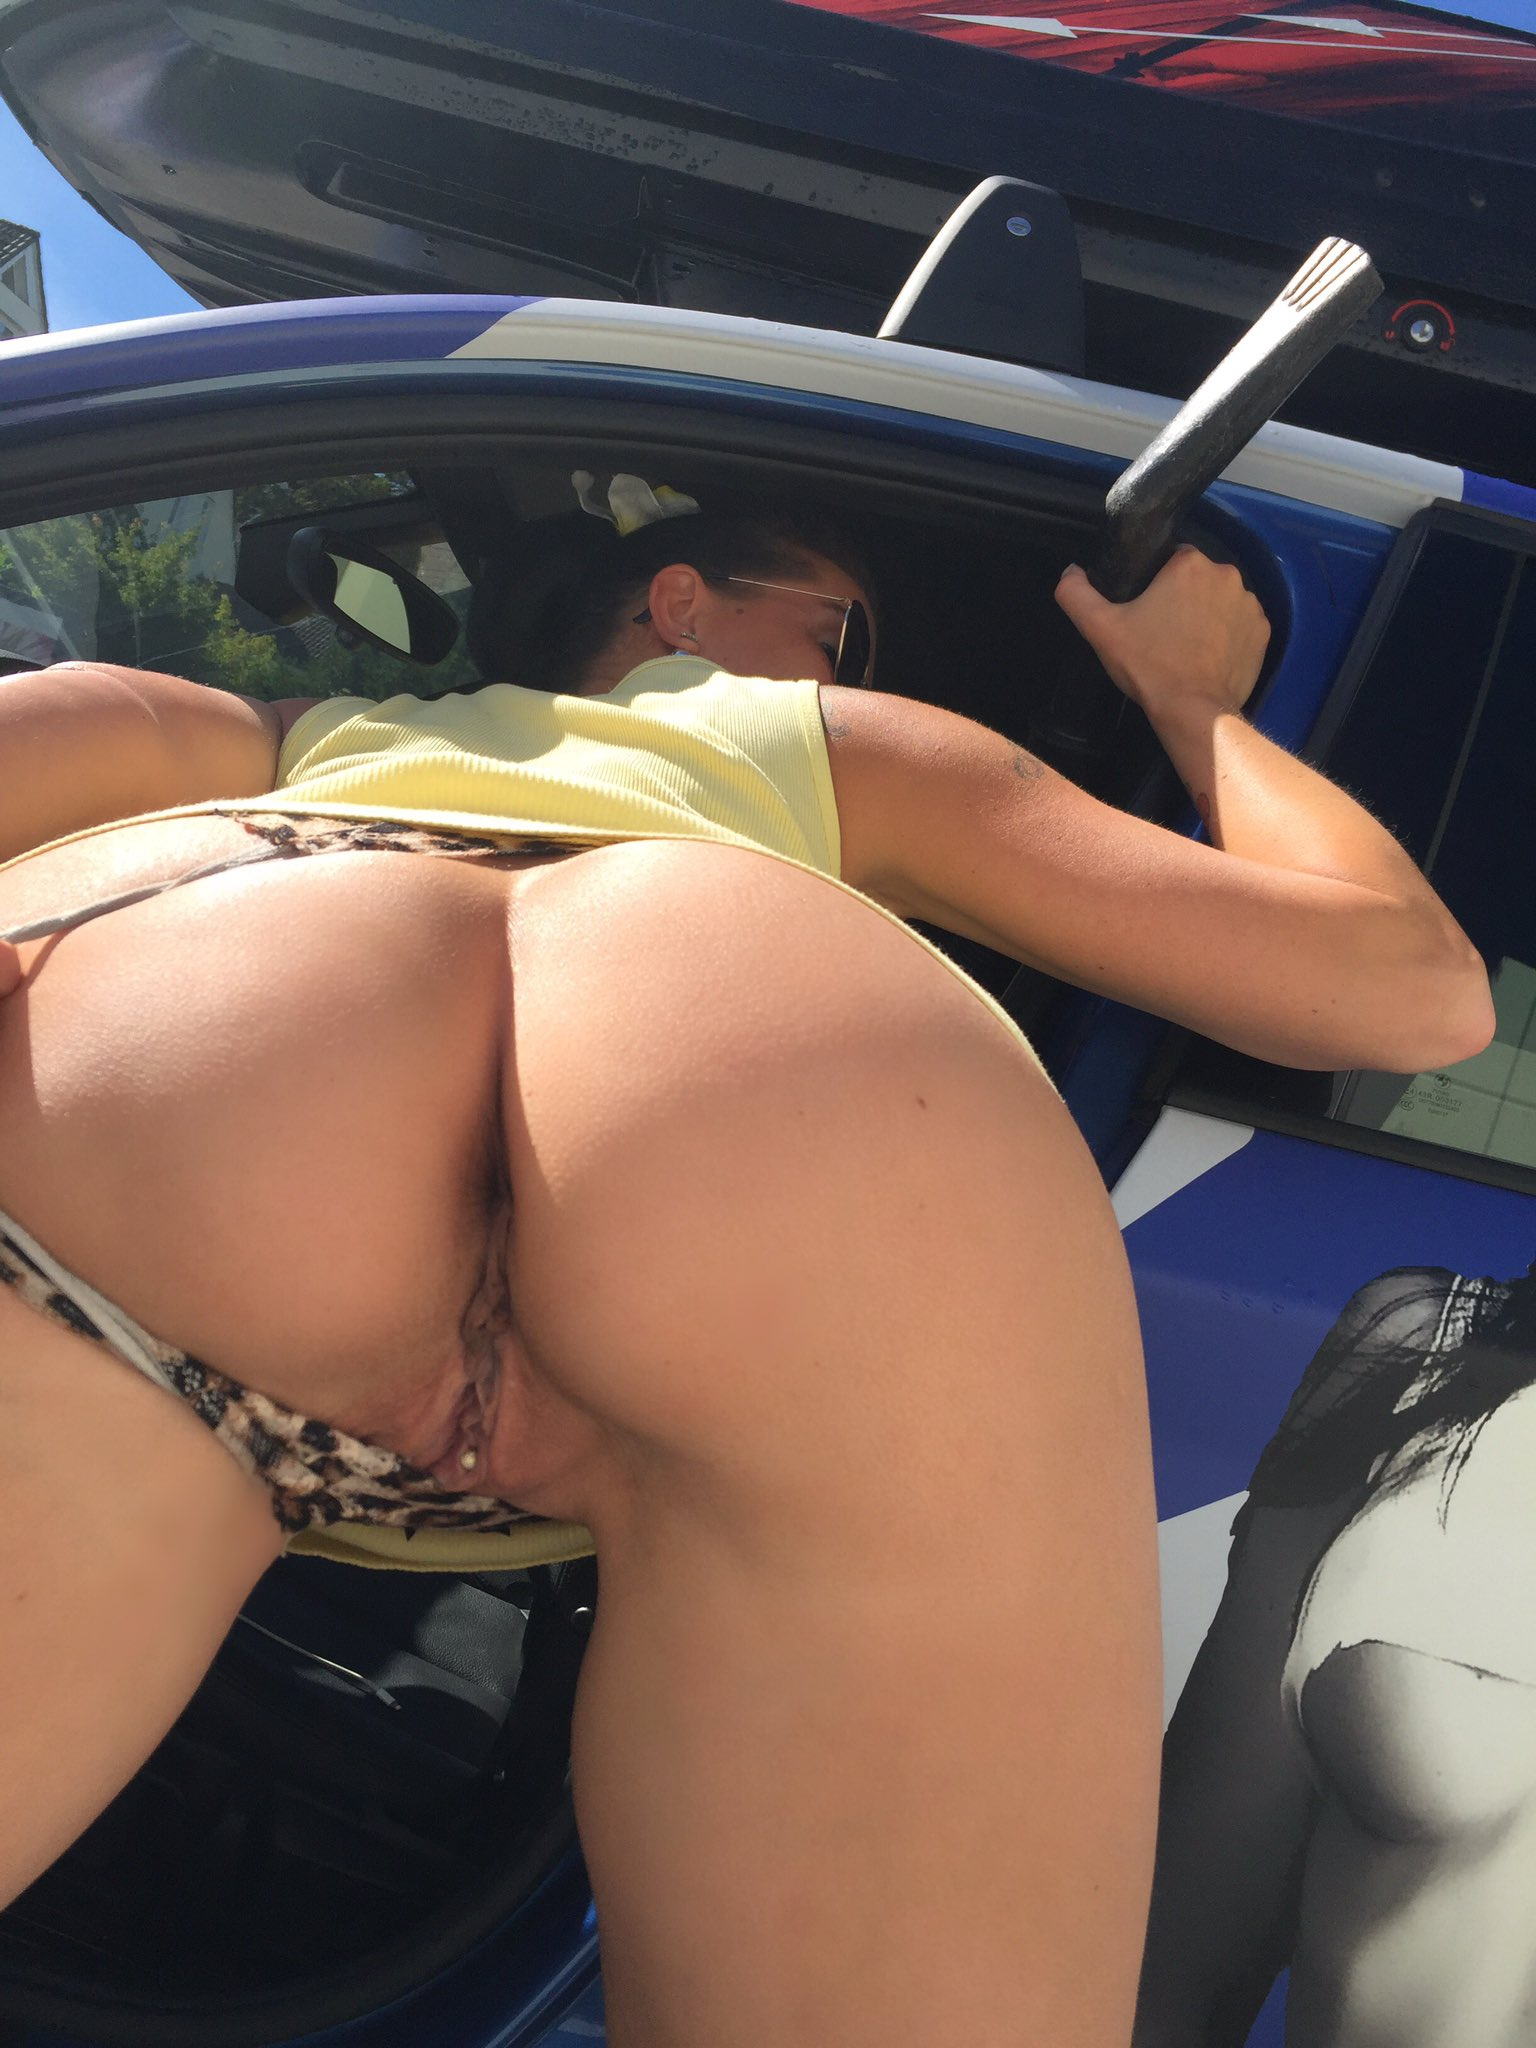 A good creampie for tiffany watson in hawaii - 2 part 4